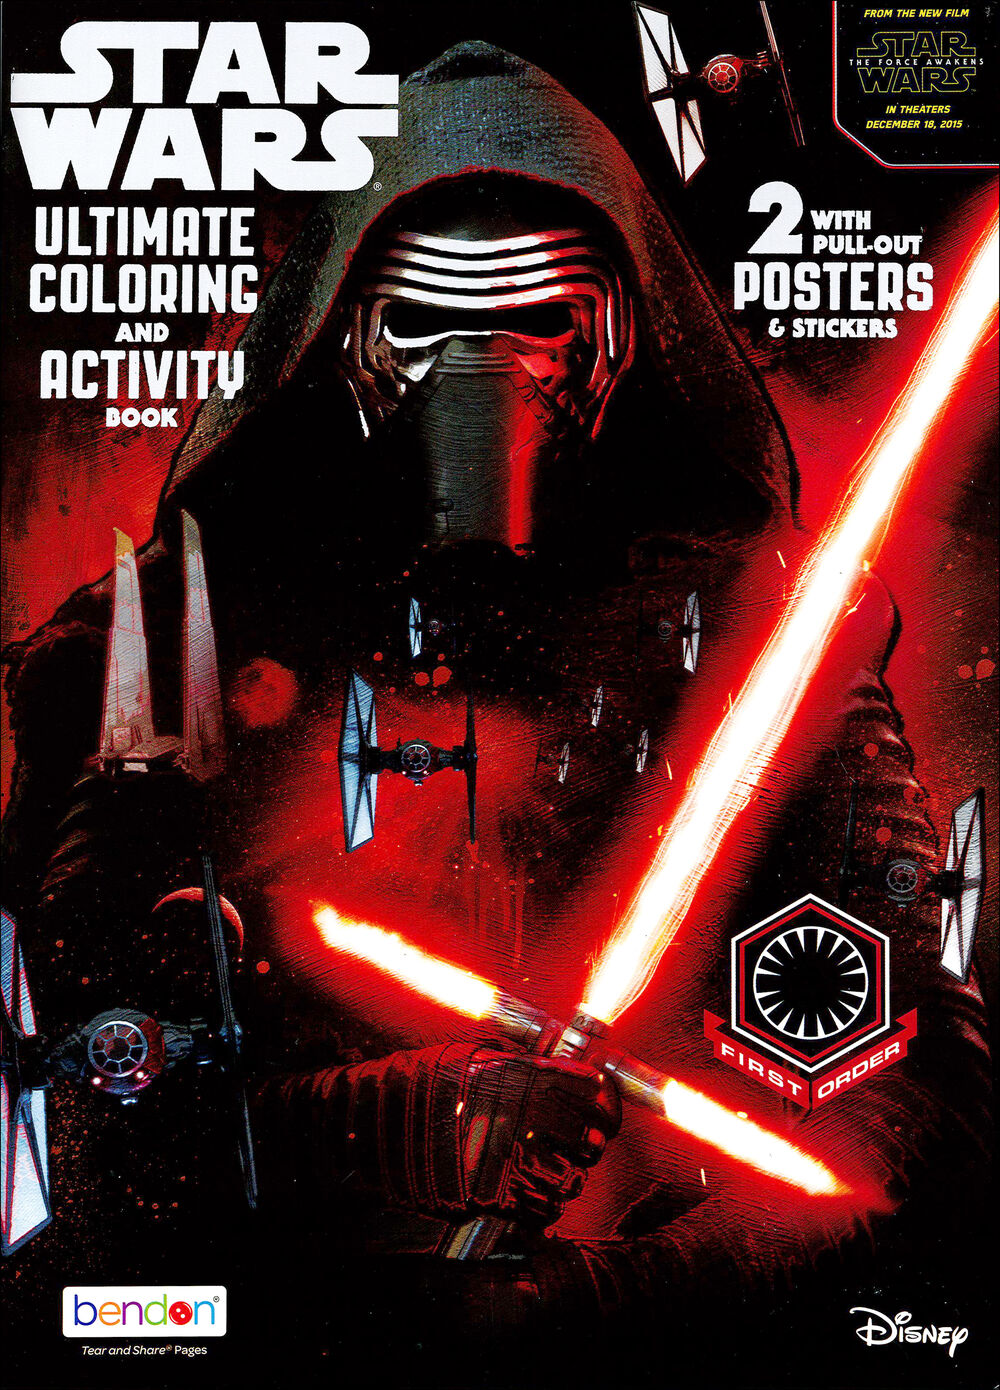 Star Wars Ultimate Coloring and Activity Book